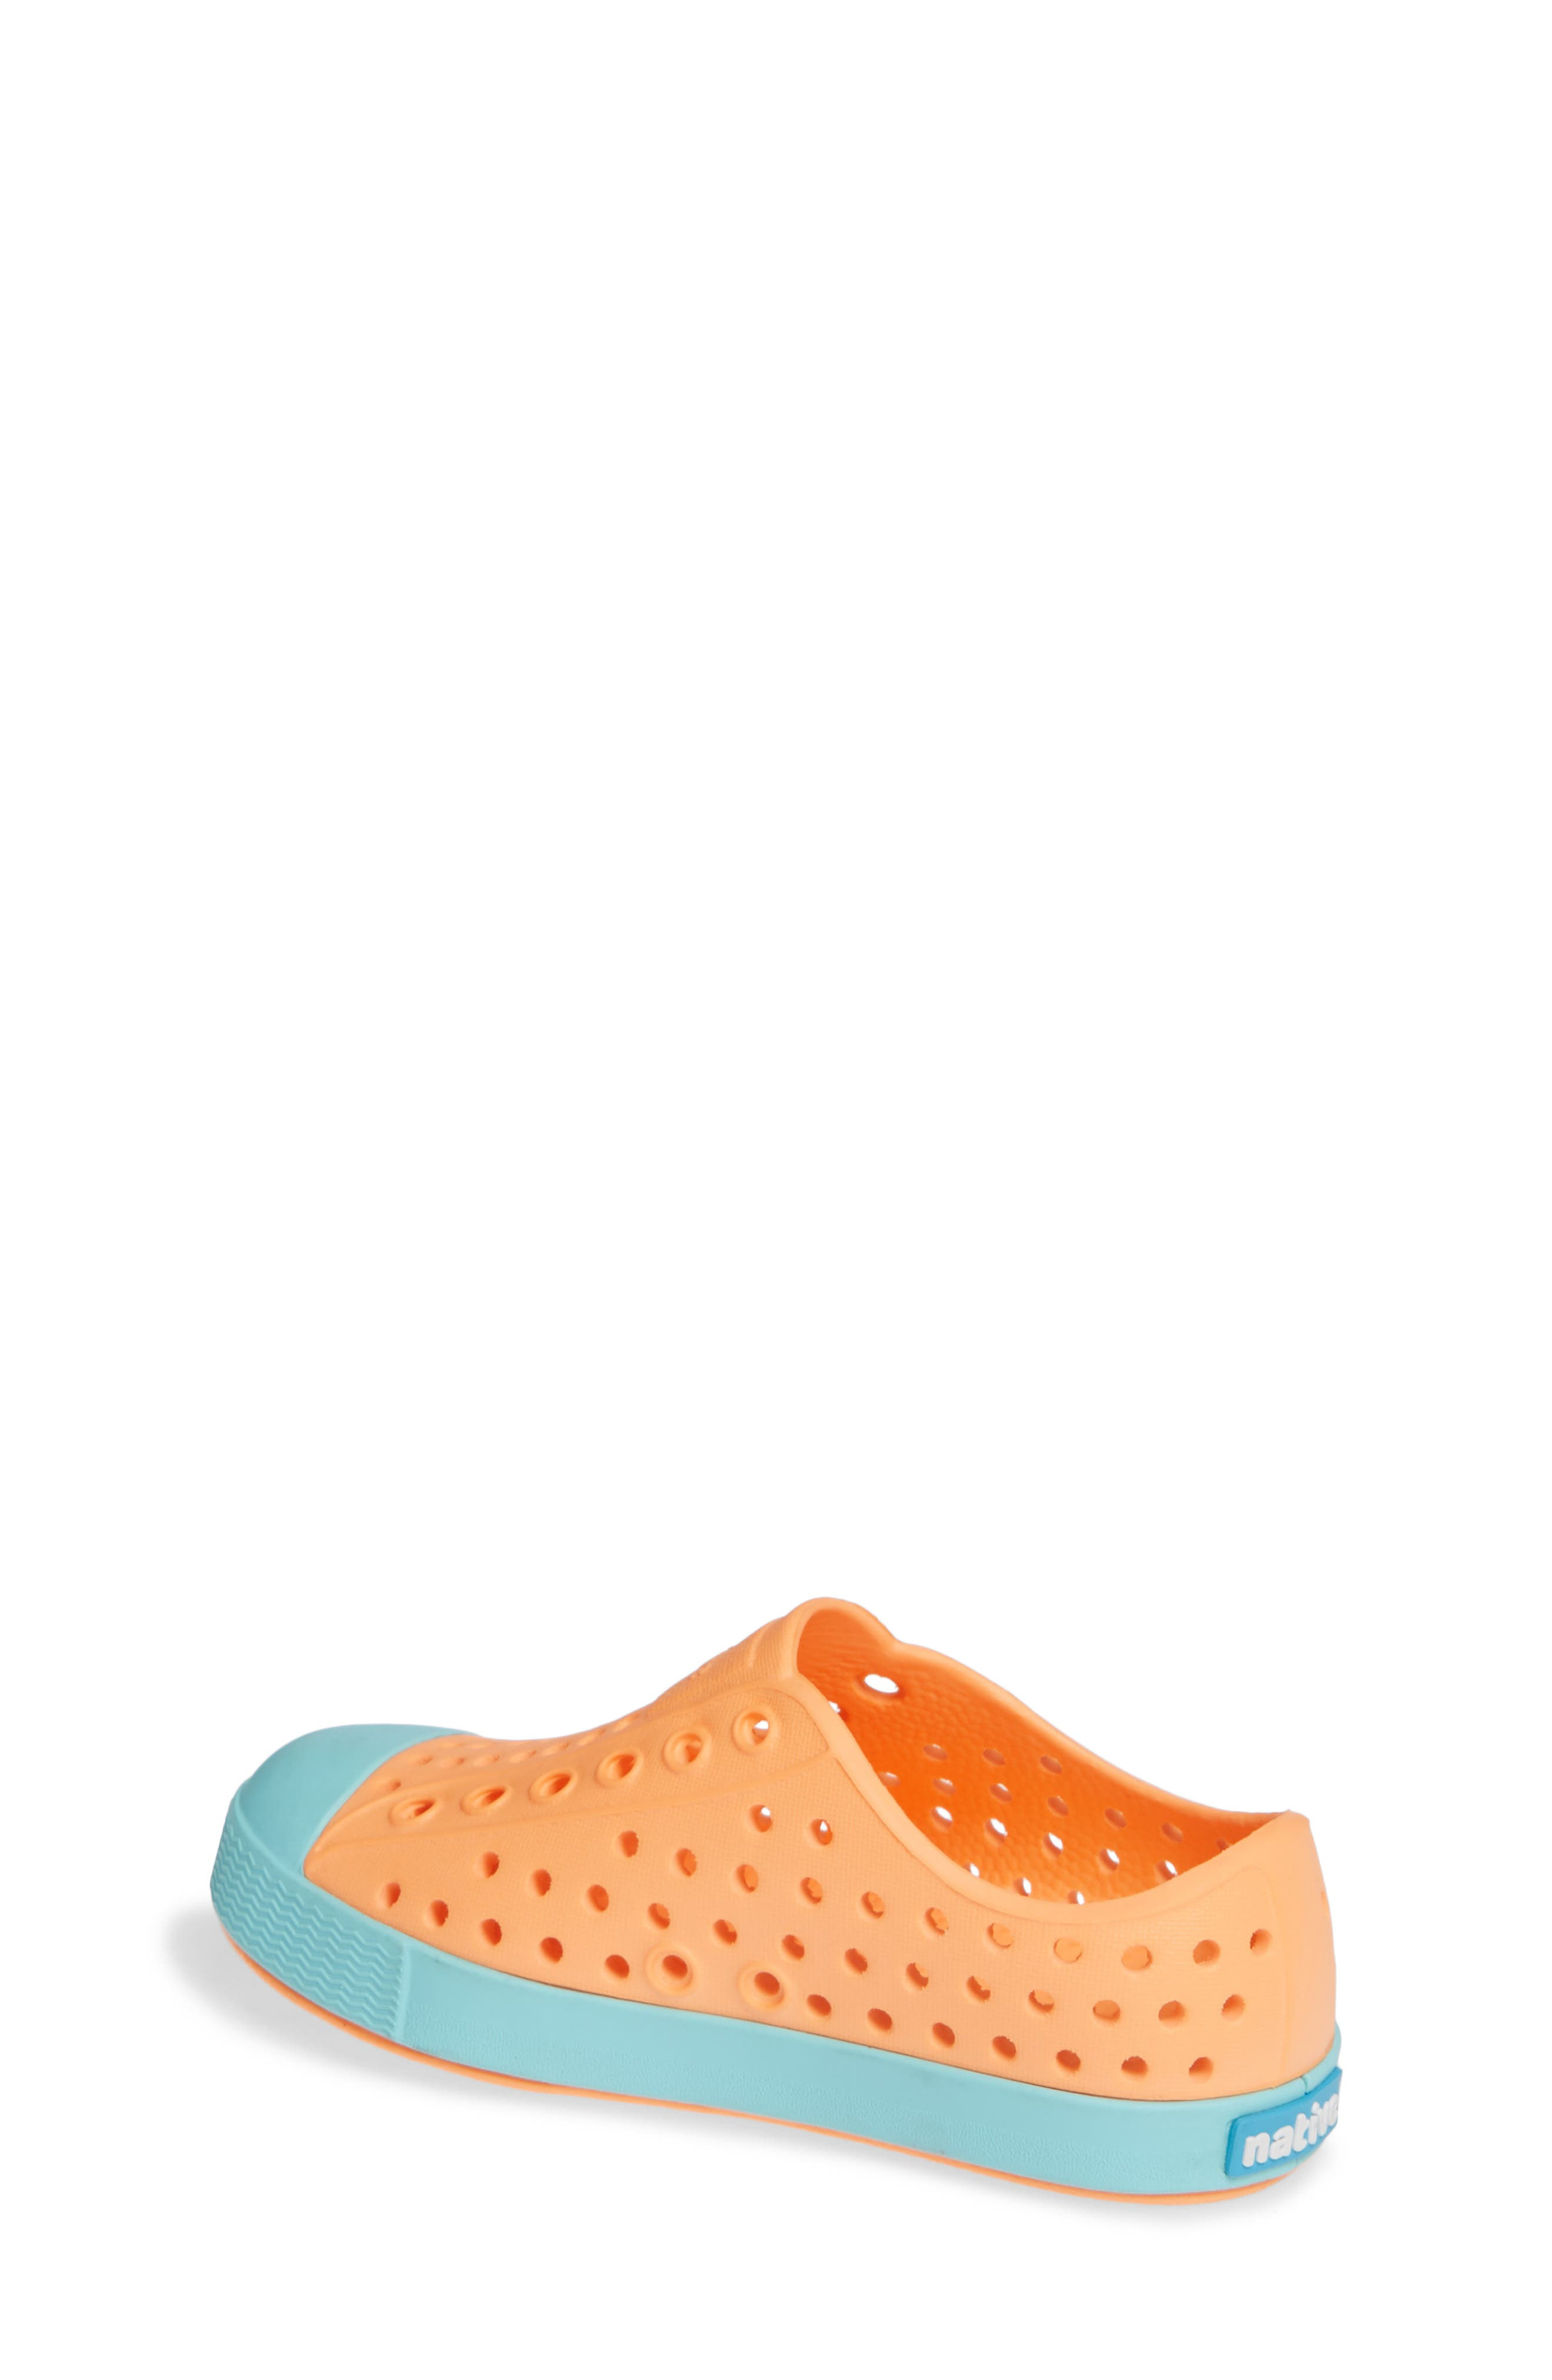 'Jefferson' Water Friendly Slip-On Sneaker,                             Alternate thumbnail 2, color,                             LASER ORANGE/ SHERBET BLUE